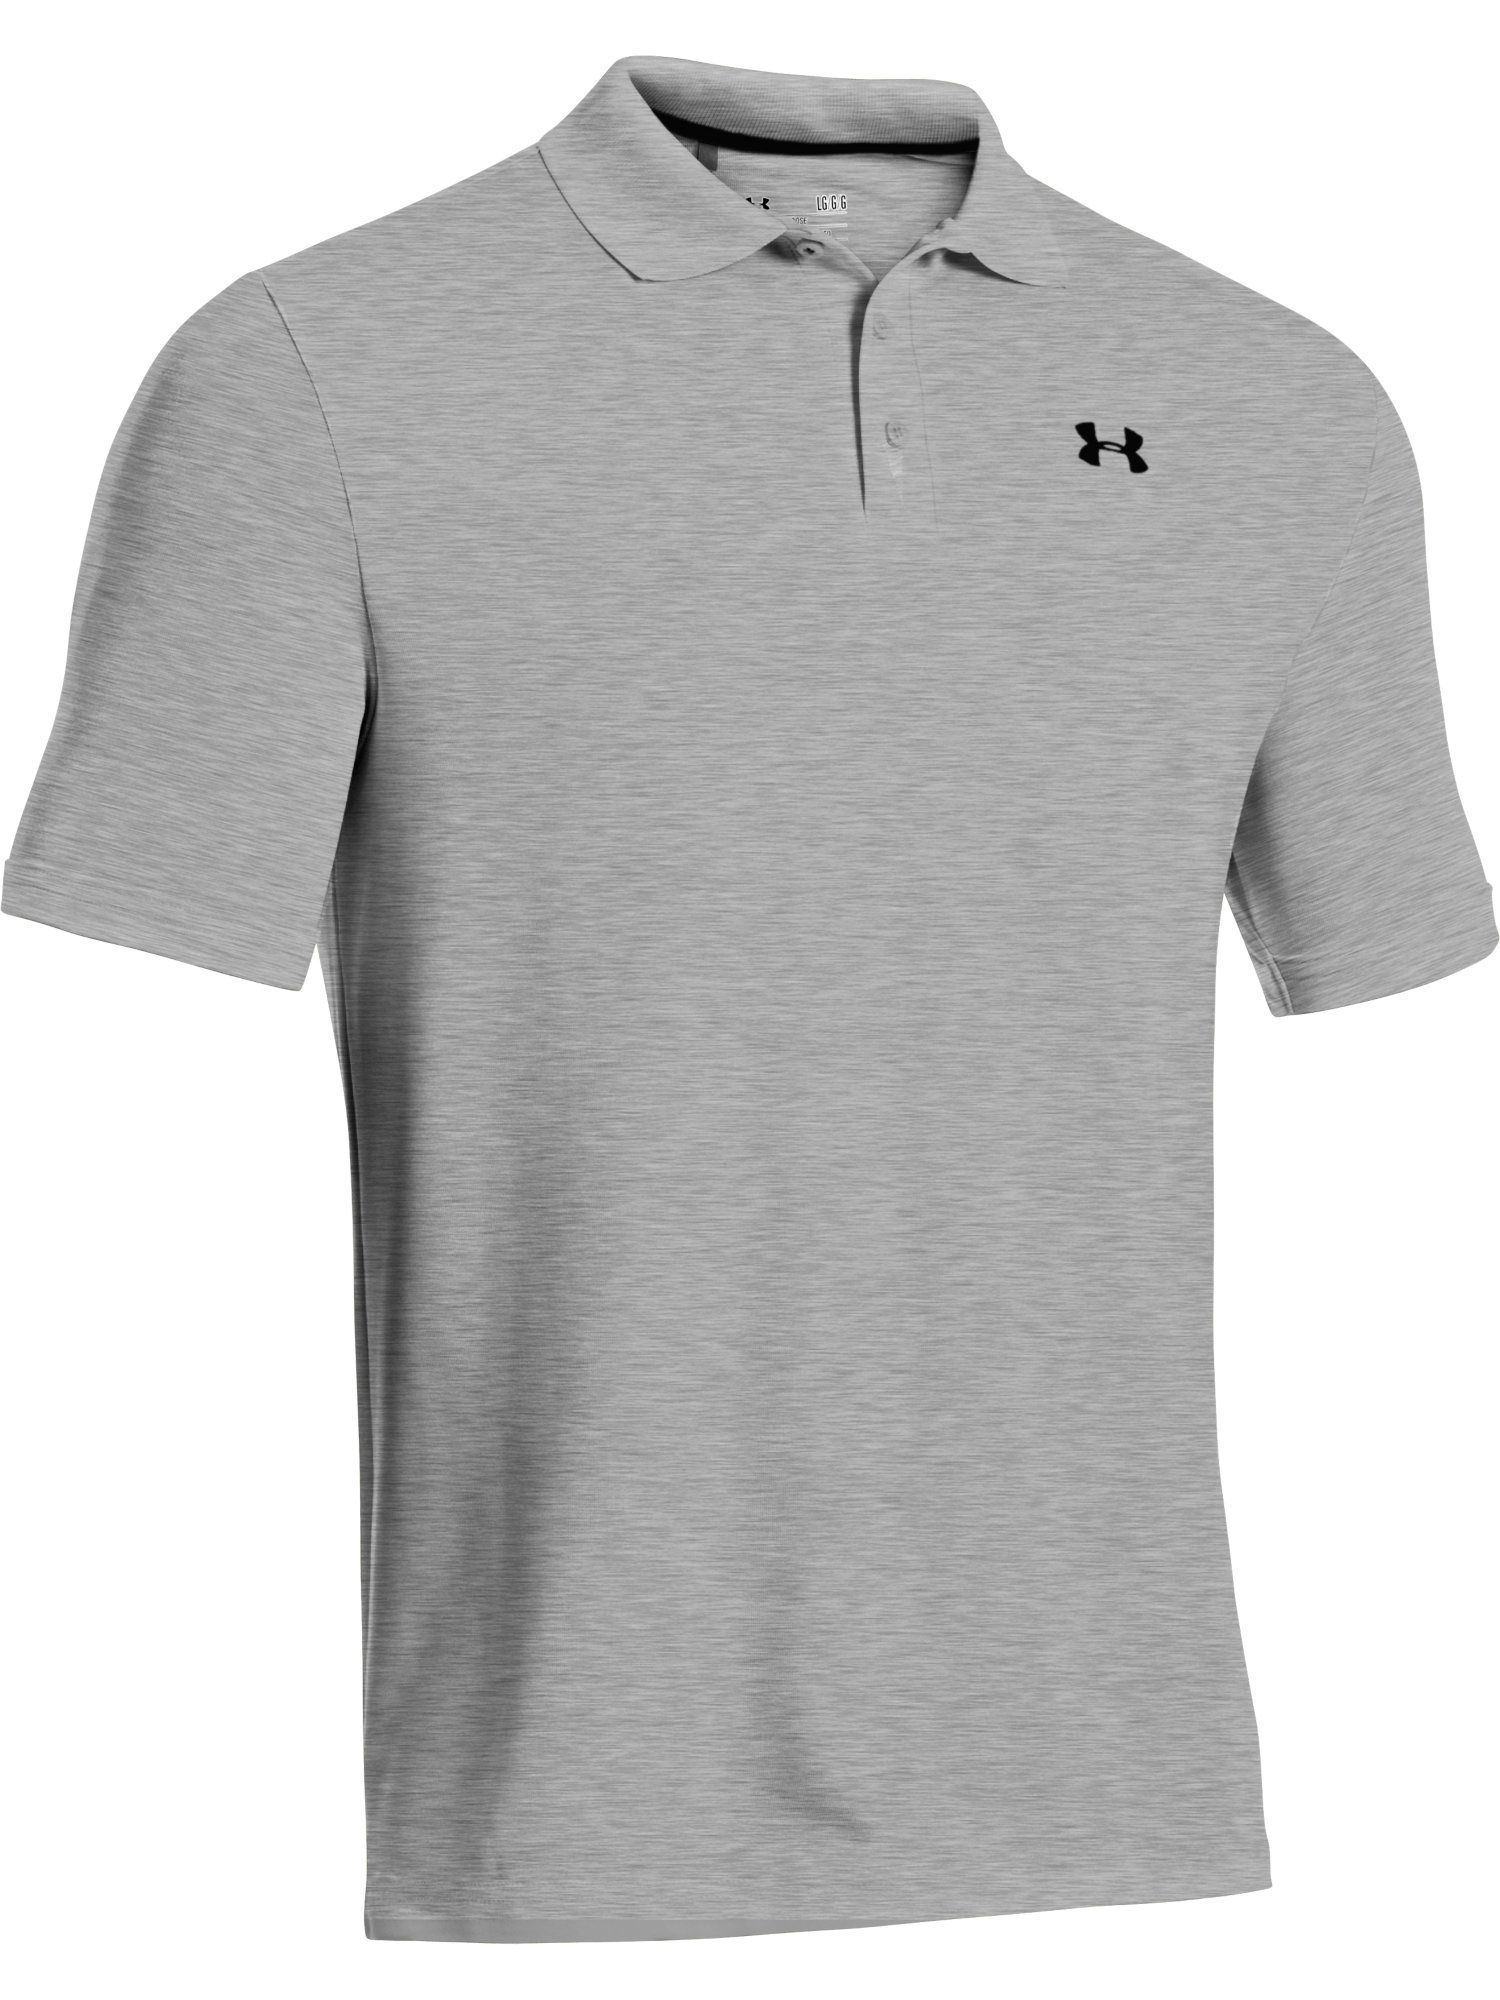 Men's Under Armour Performance Polo, Grey